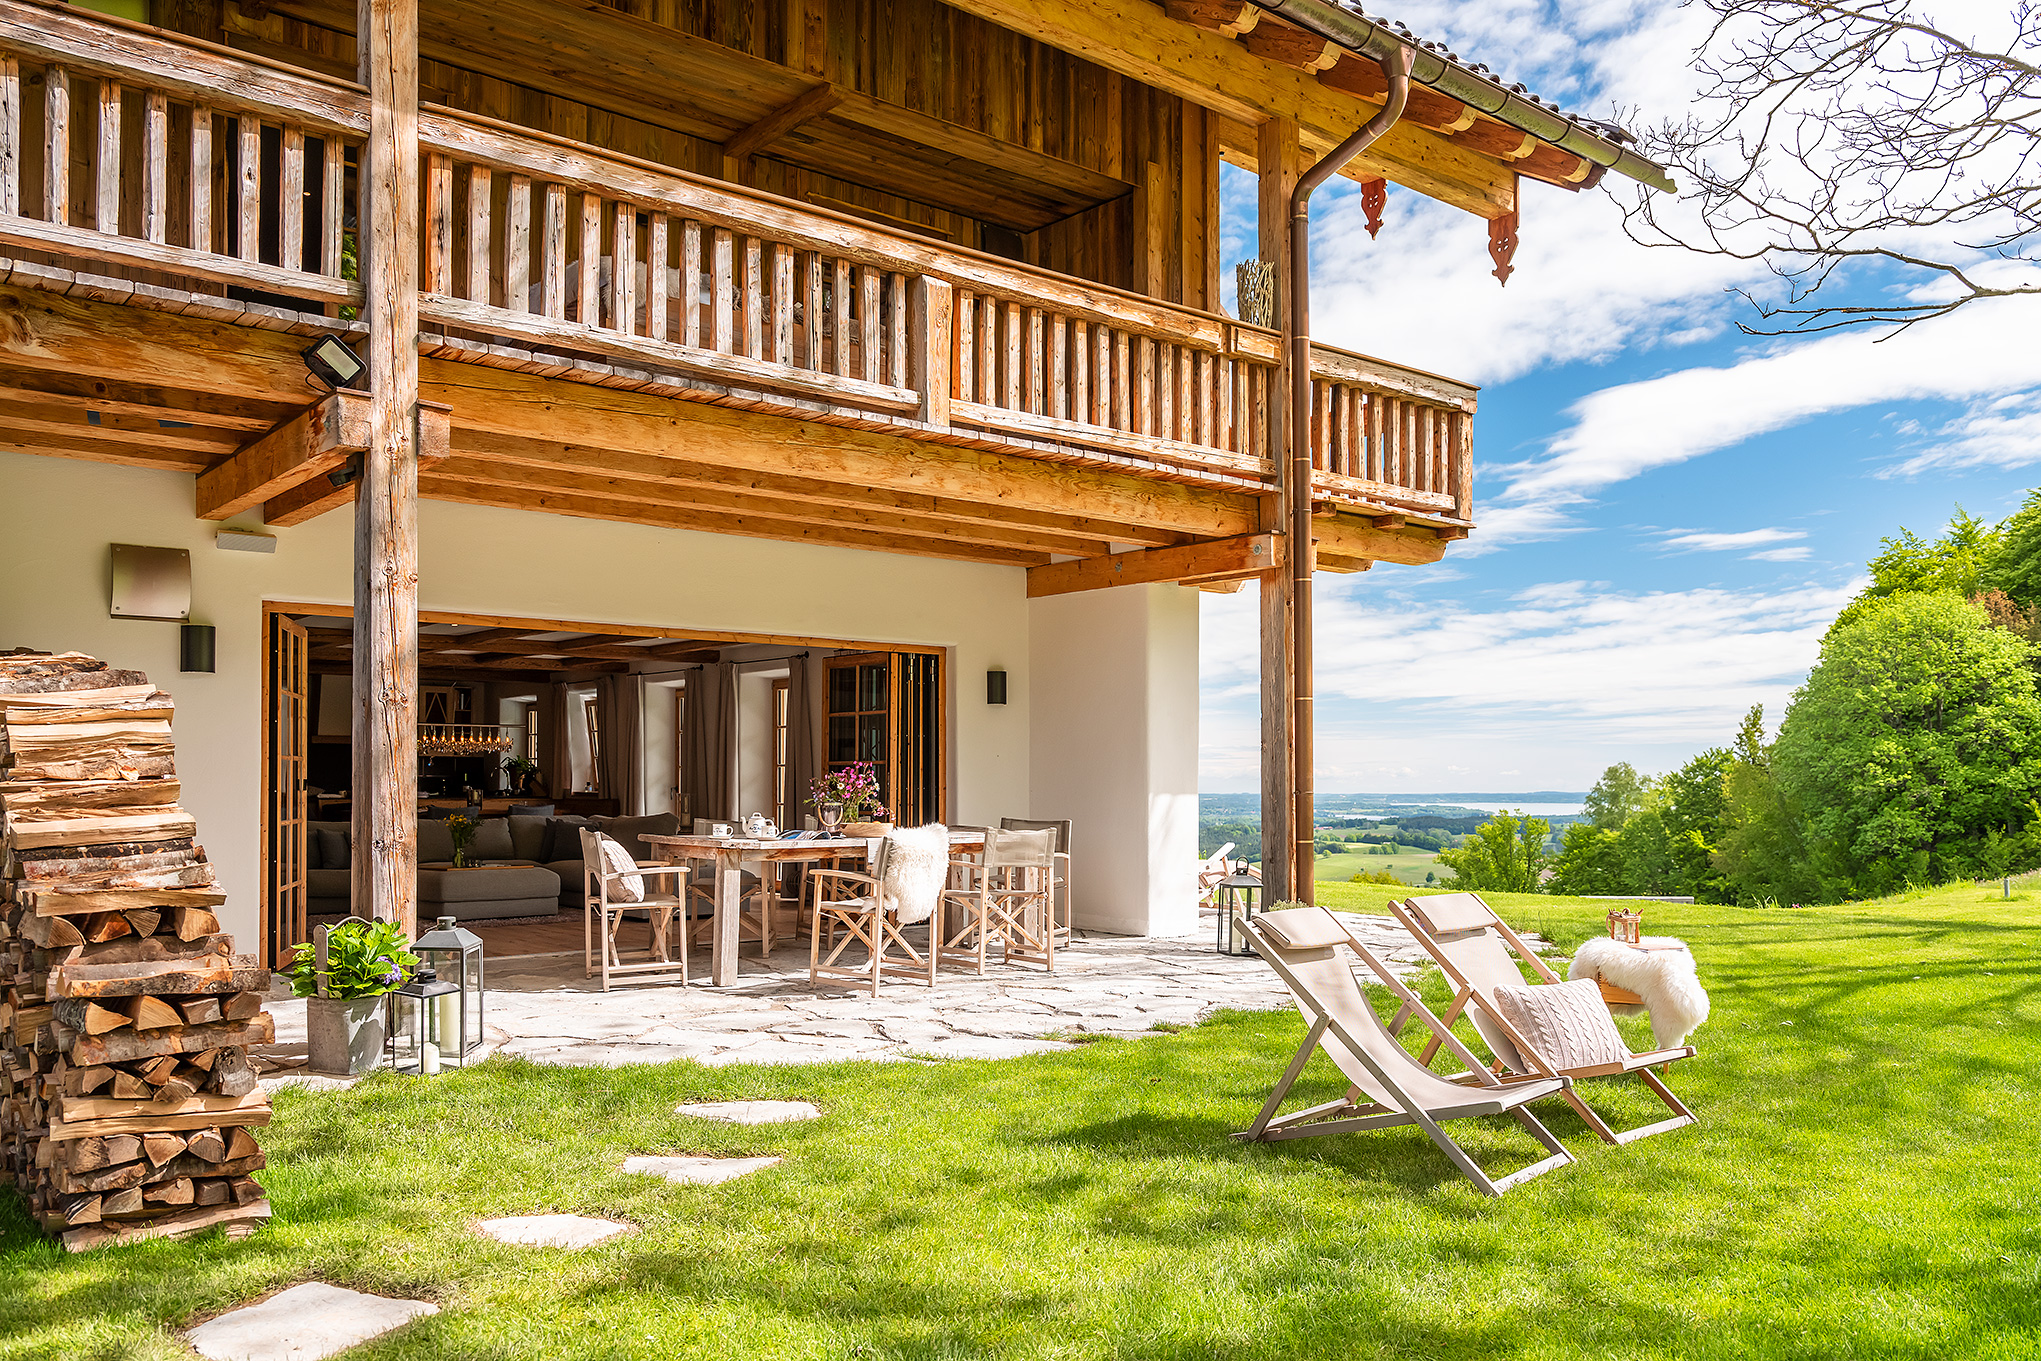 Chiemsee Chalet